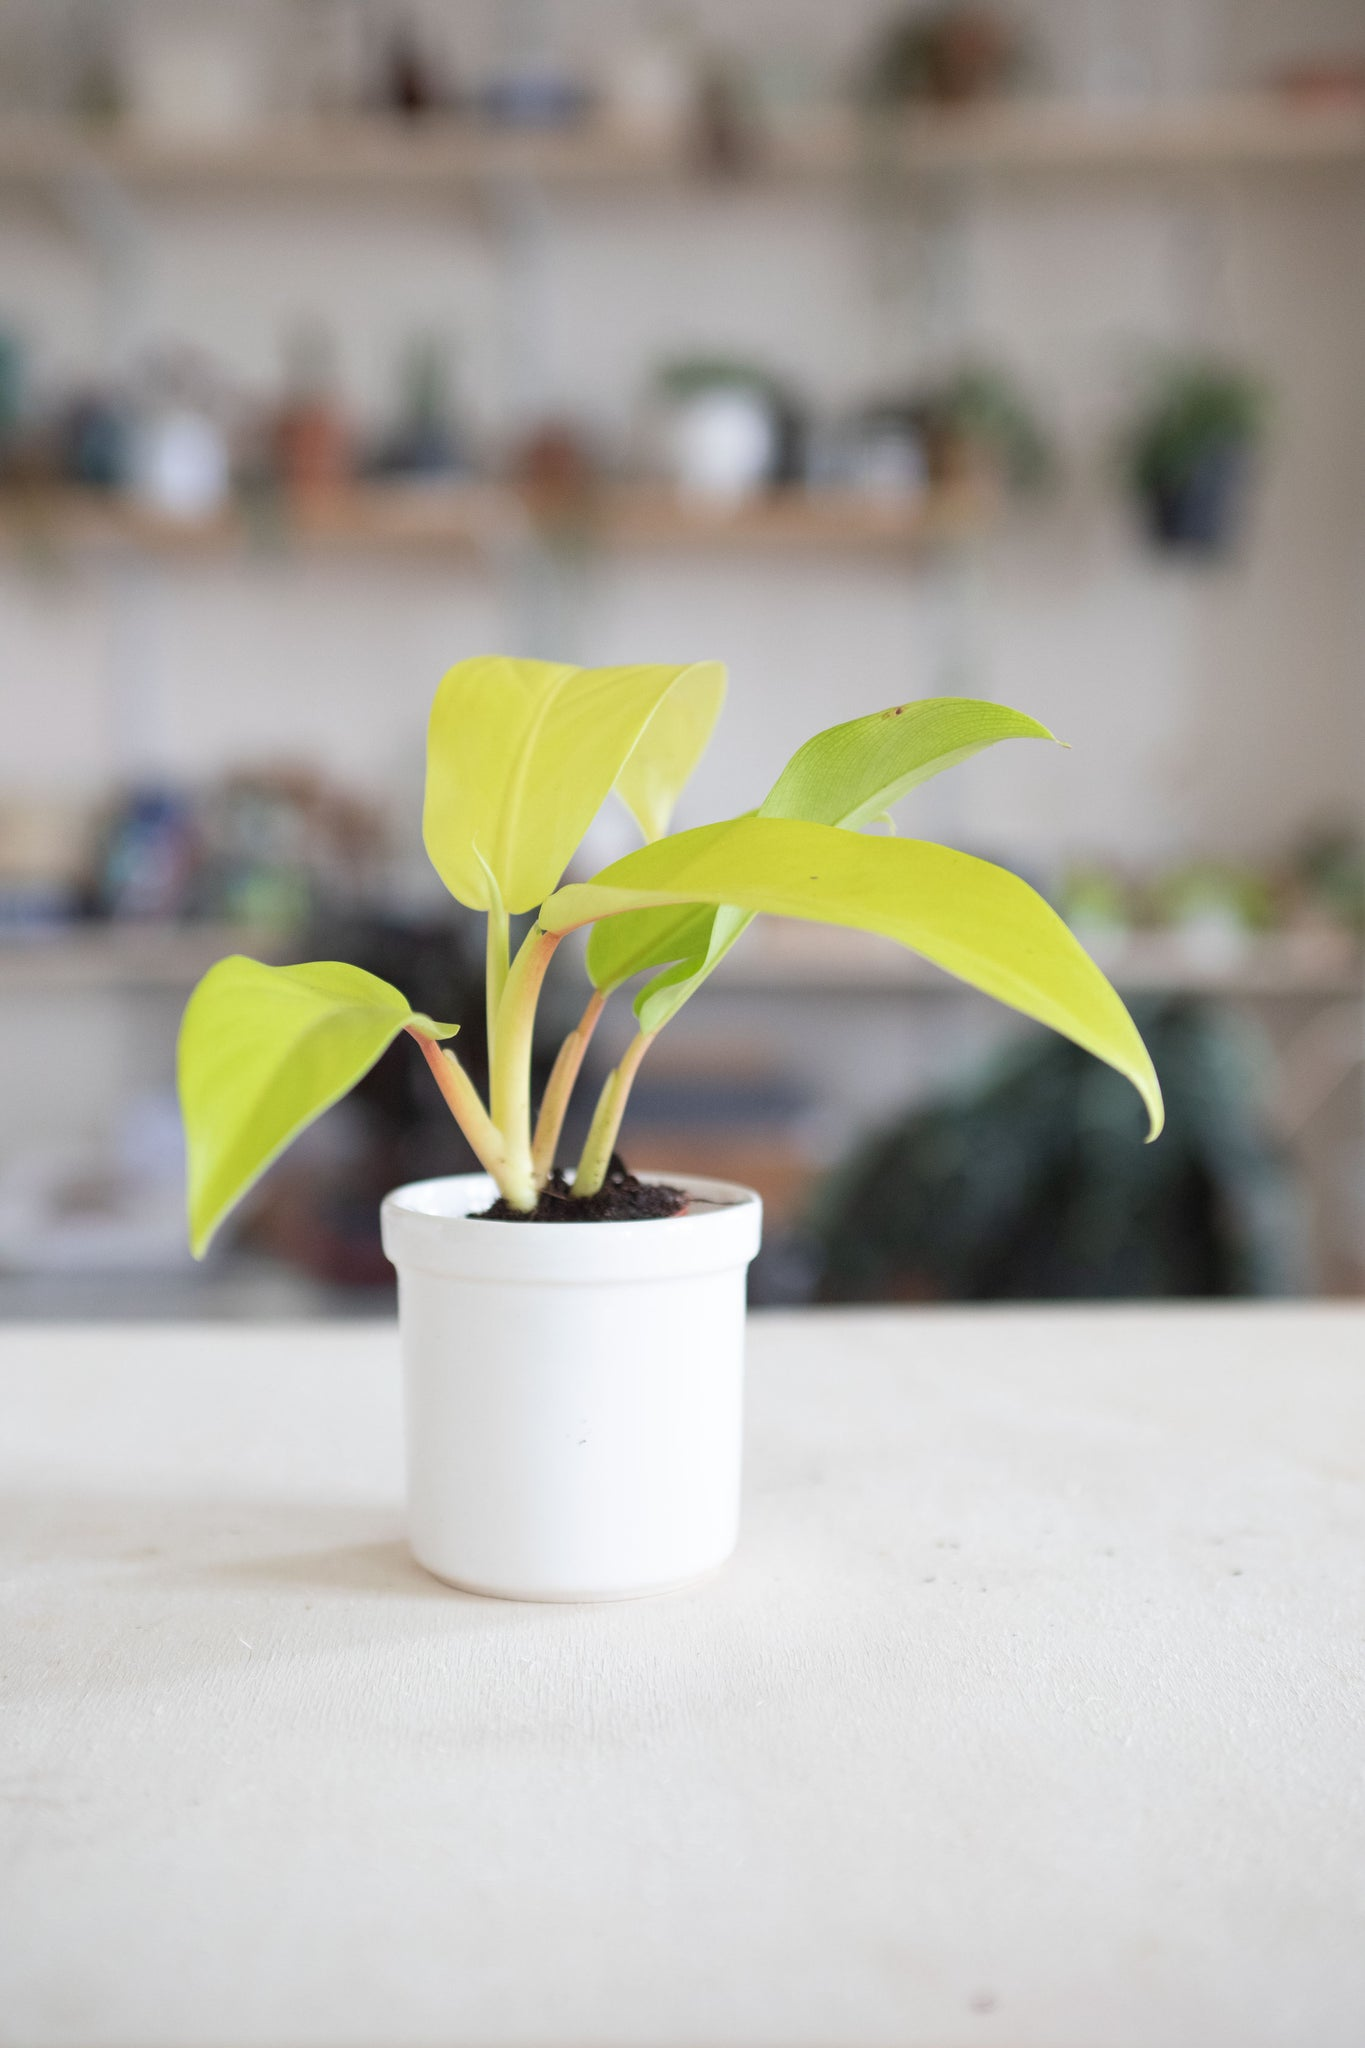 philodendron lemon lime 'Malay Gold'